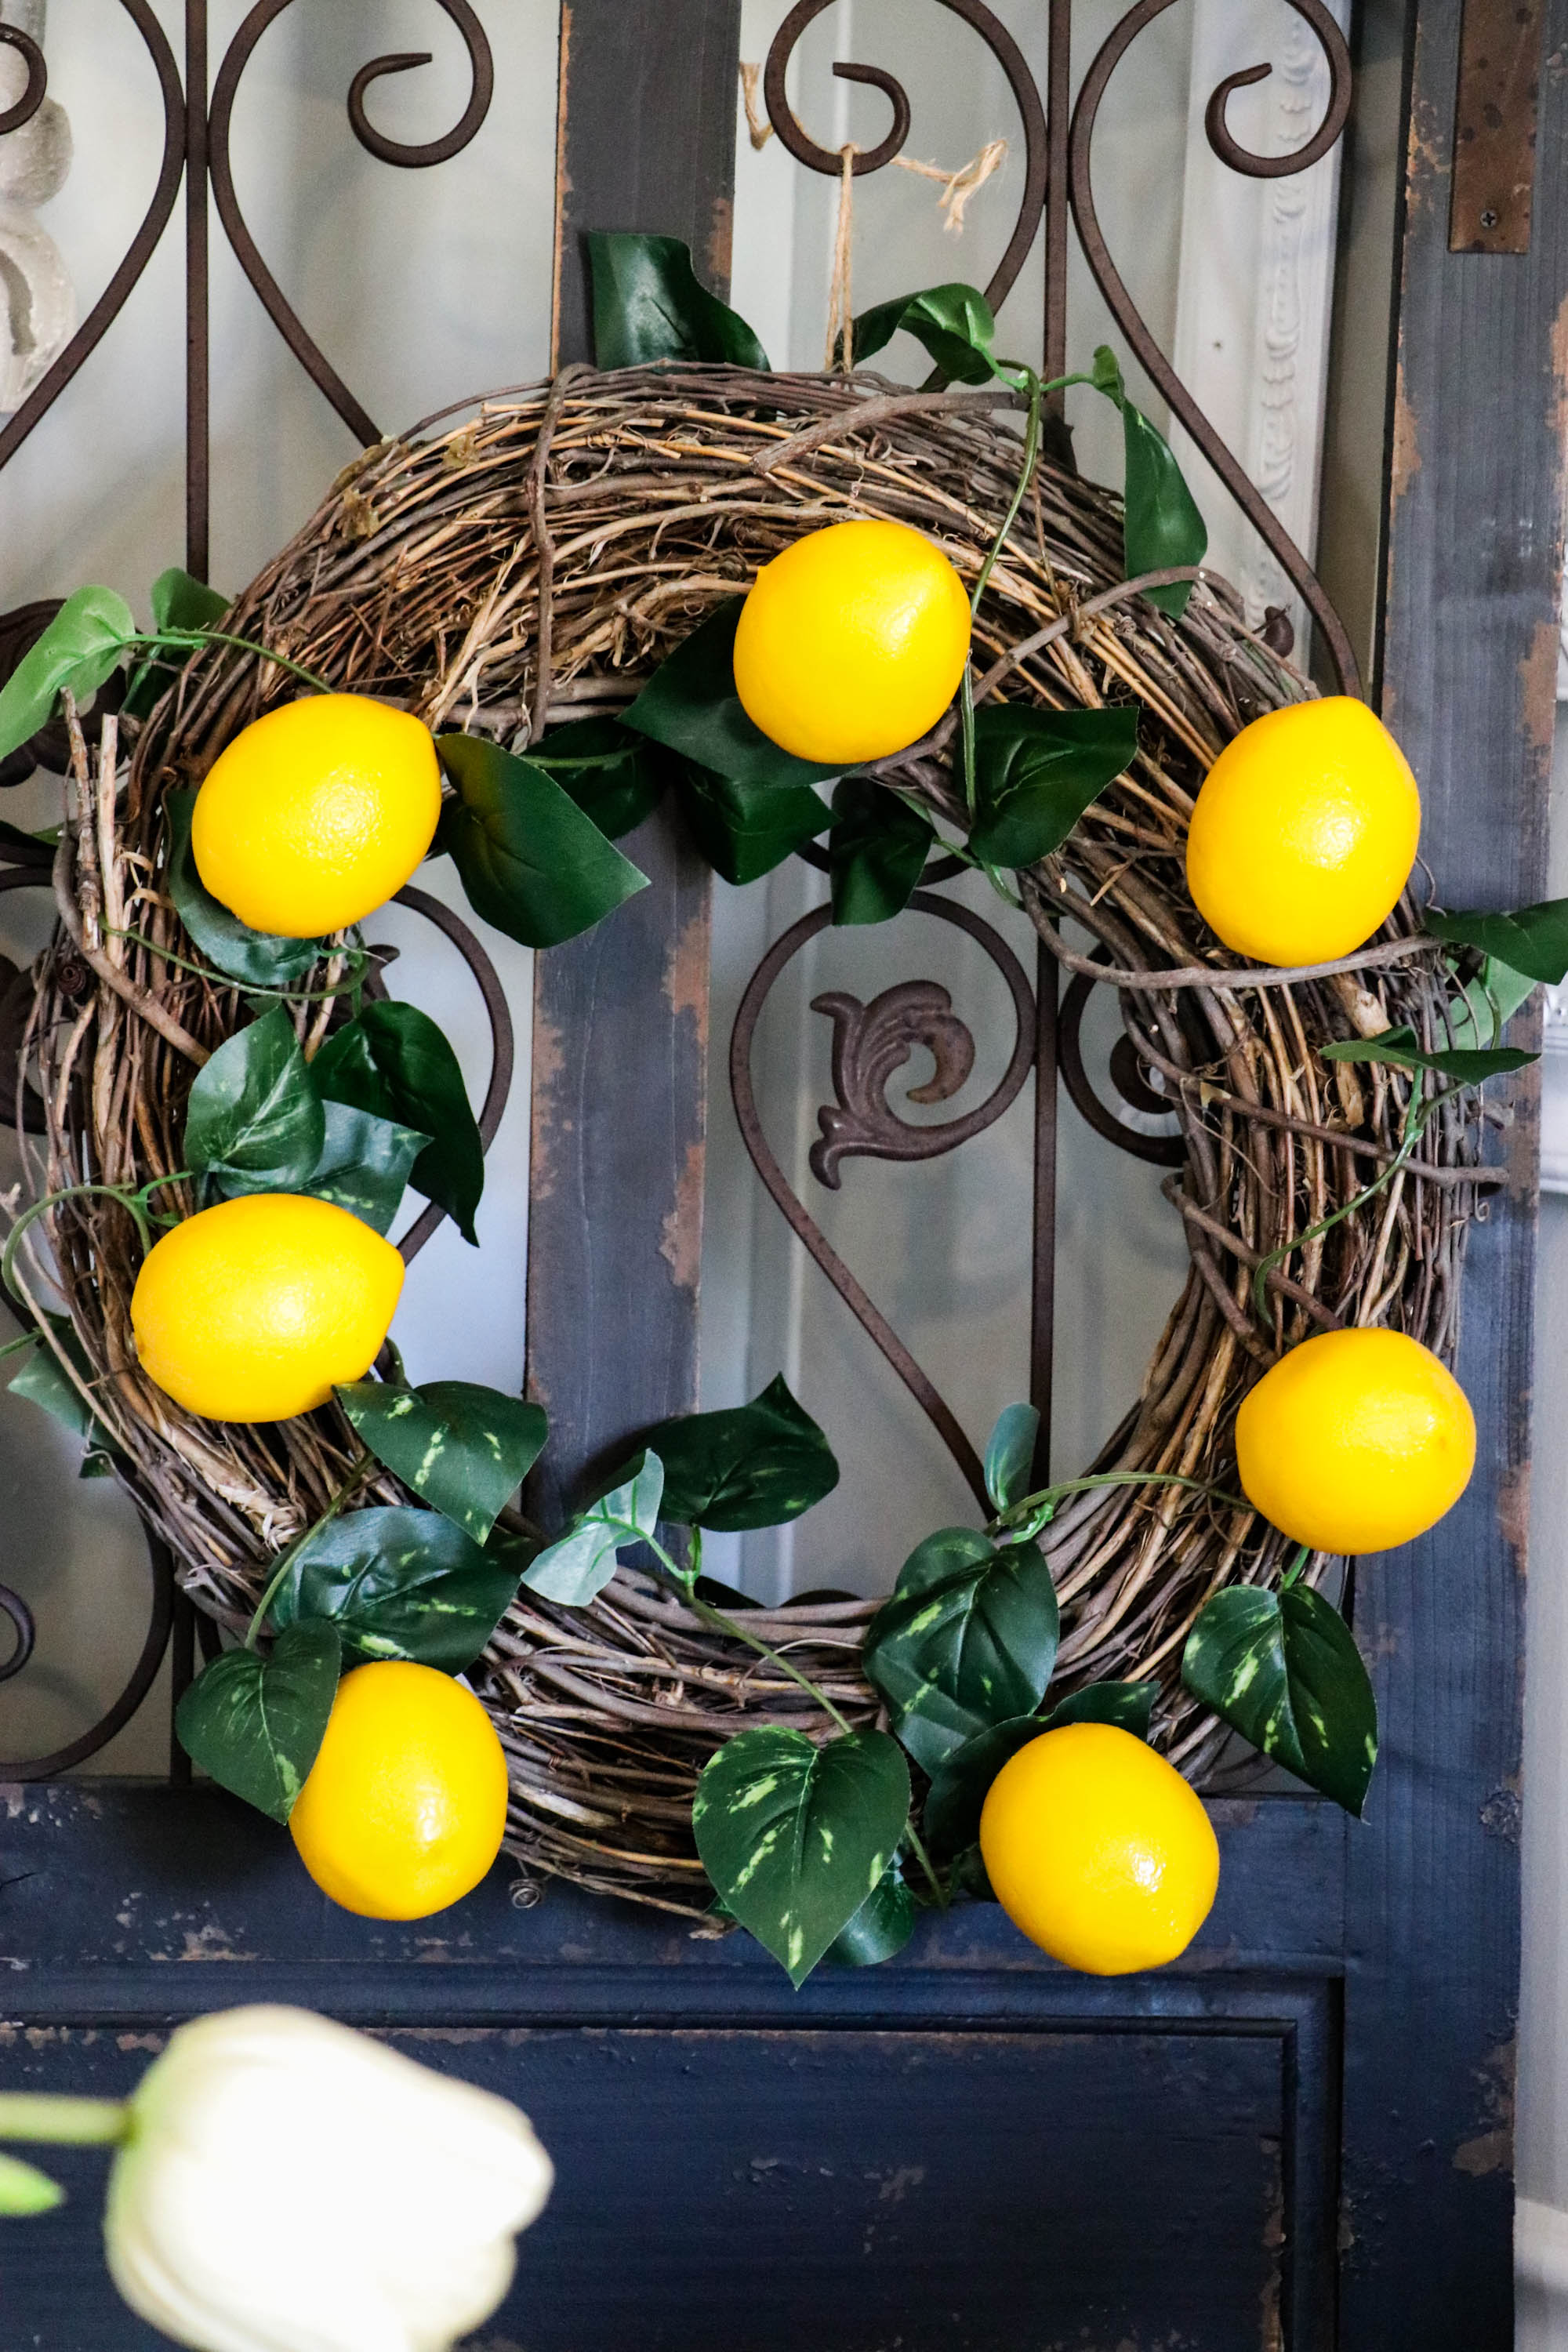 Diy Lemon Wreath With Dollar Store Materials Re Fabbed